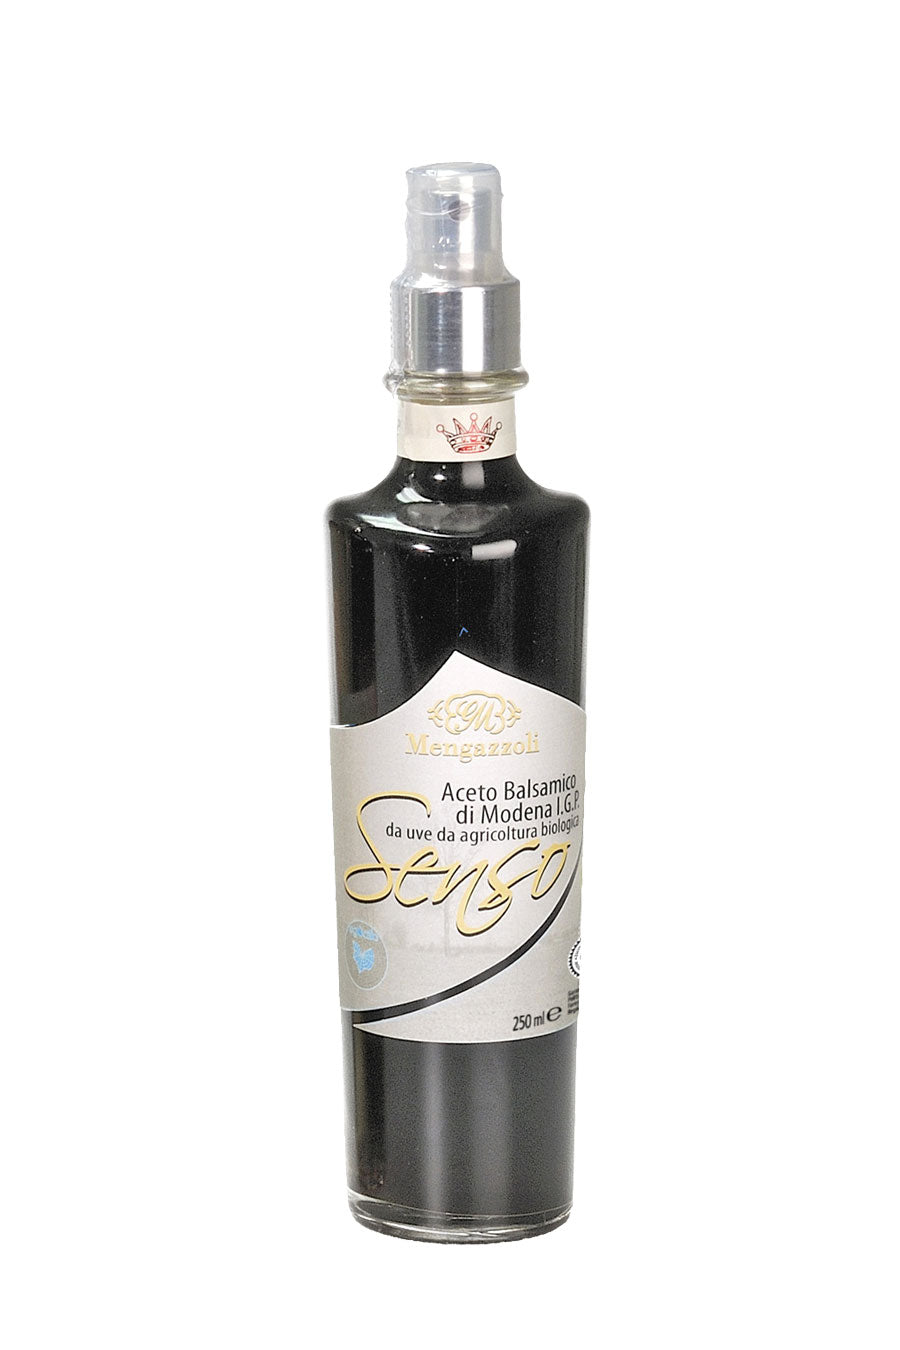 Mengazzoli Organic Balsamic of Modena I.G.P. spray 250ml